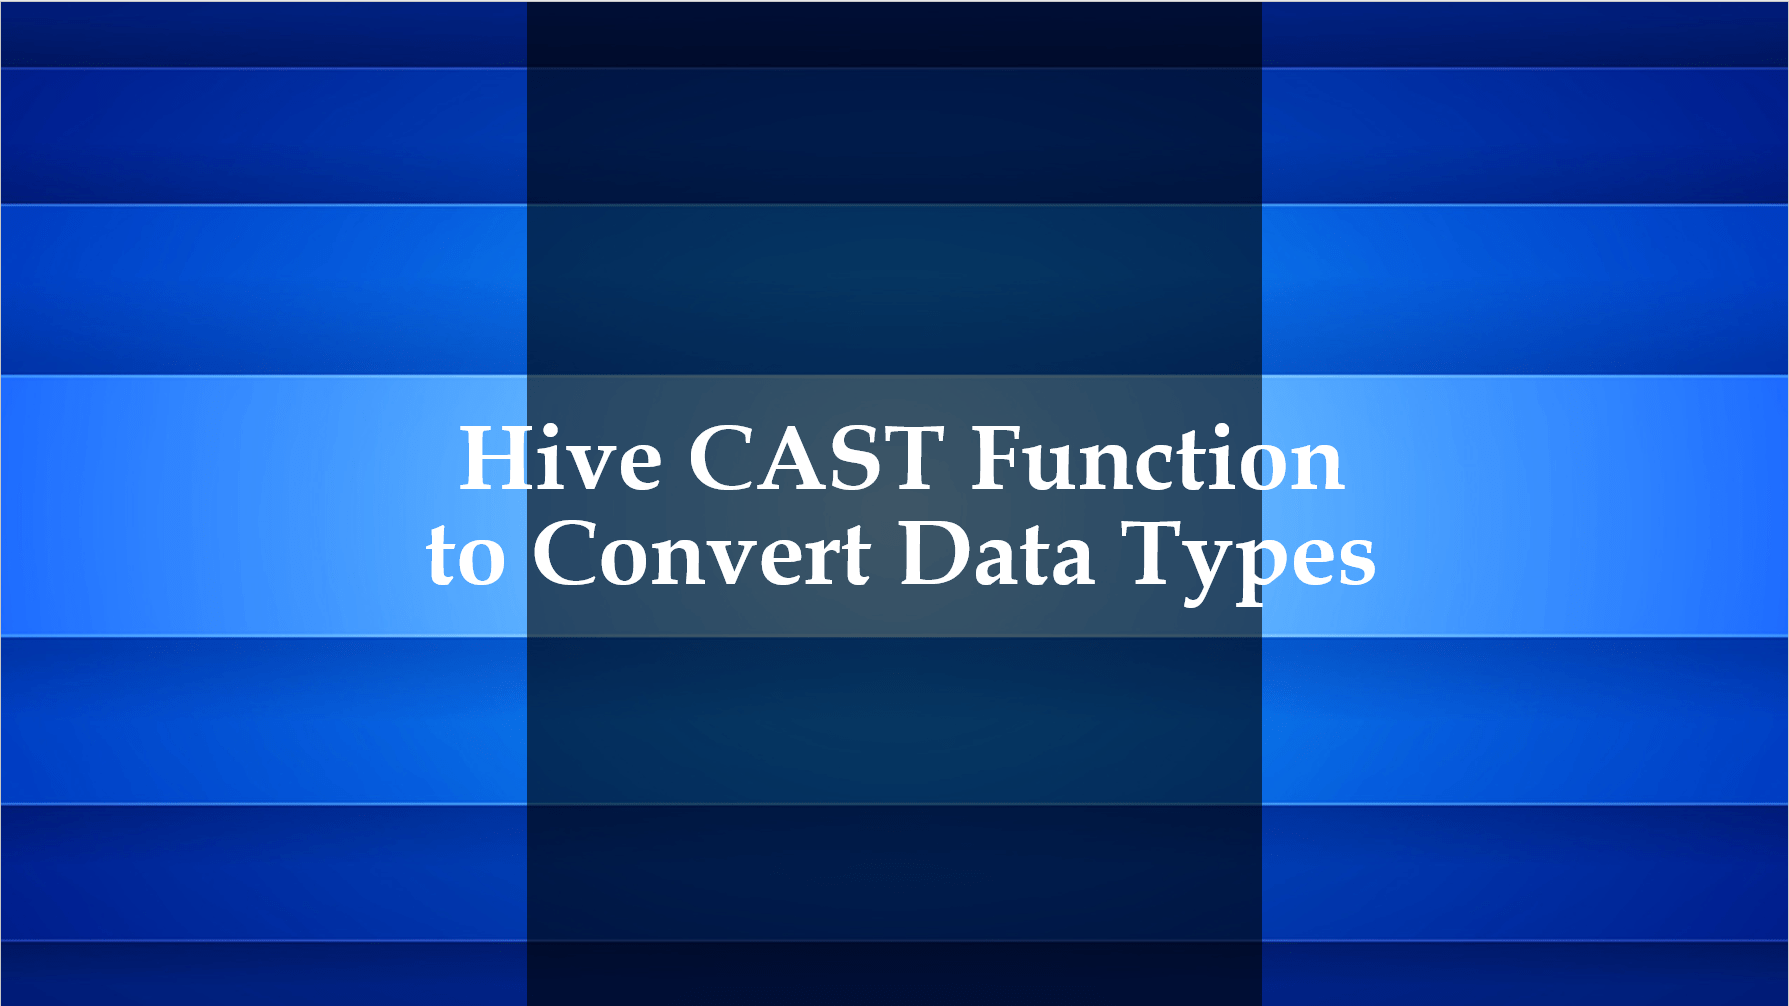 Hive Cast Function to Convert Data Type